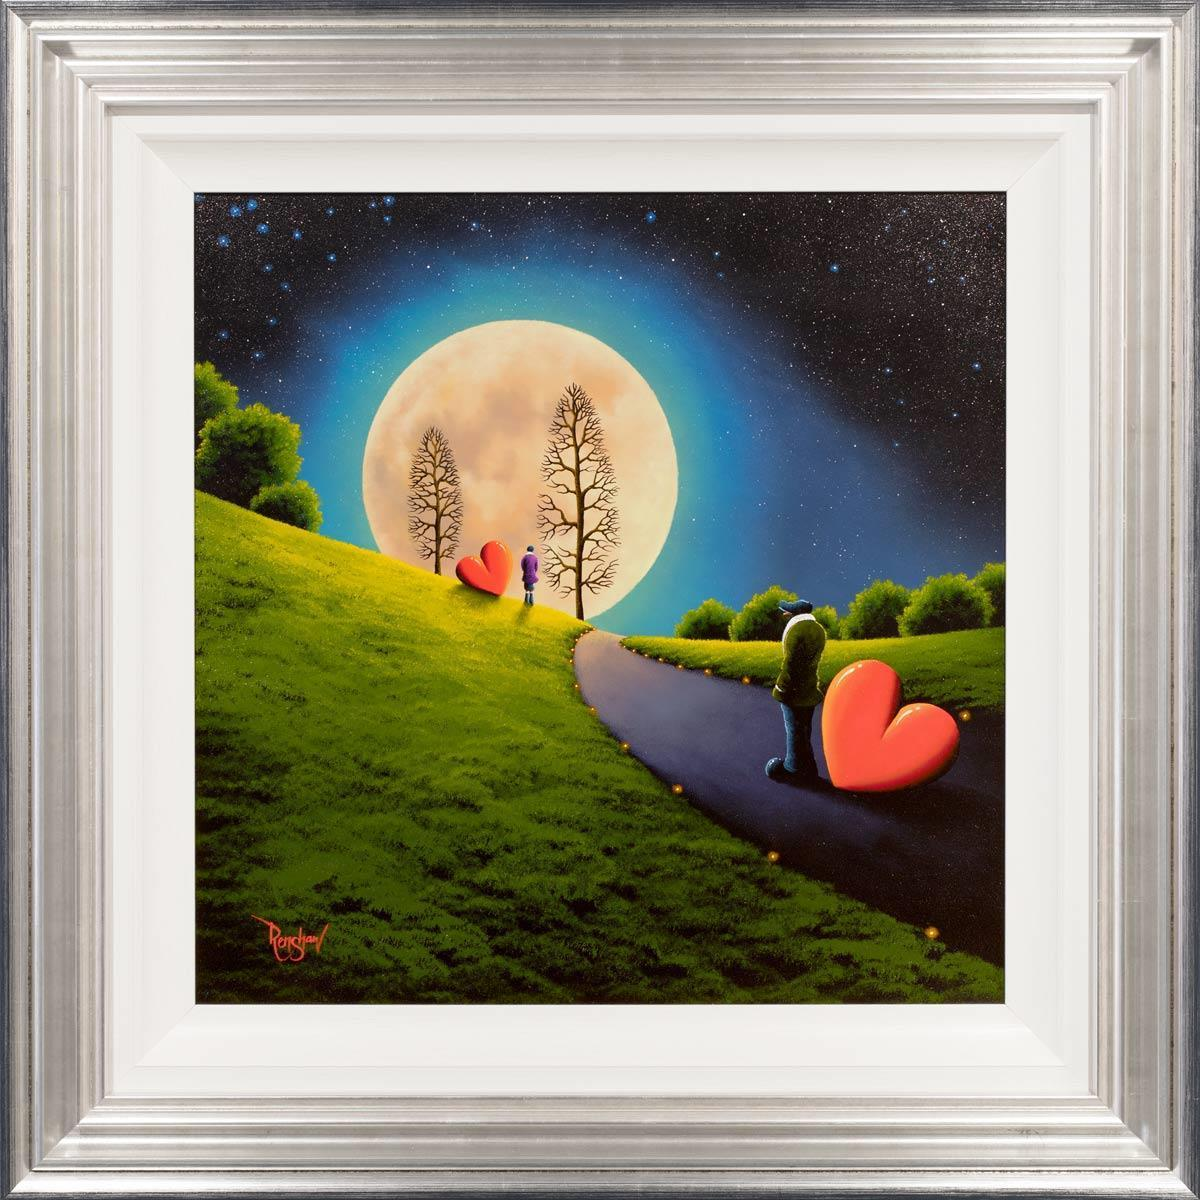 Shine Bright - Original David Renshaw